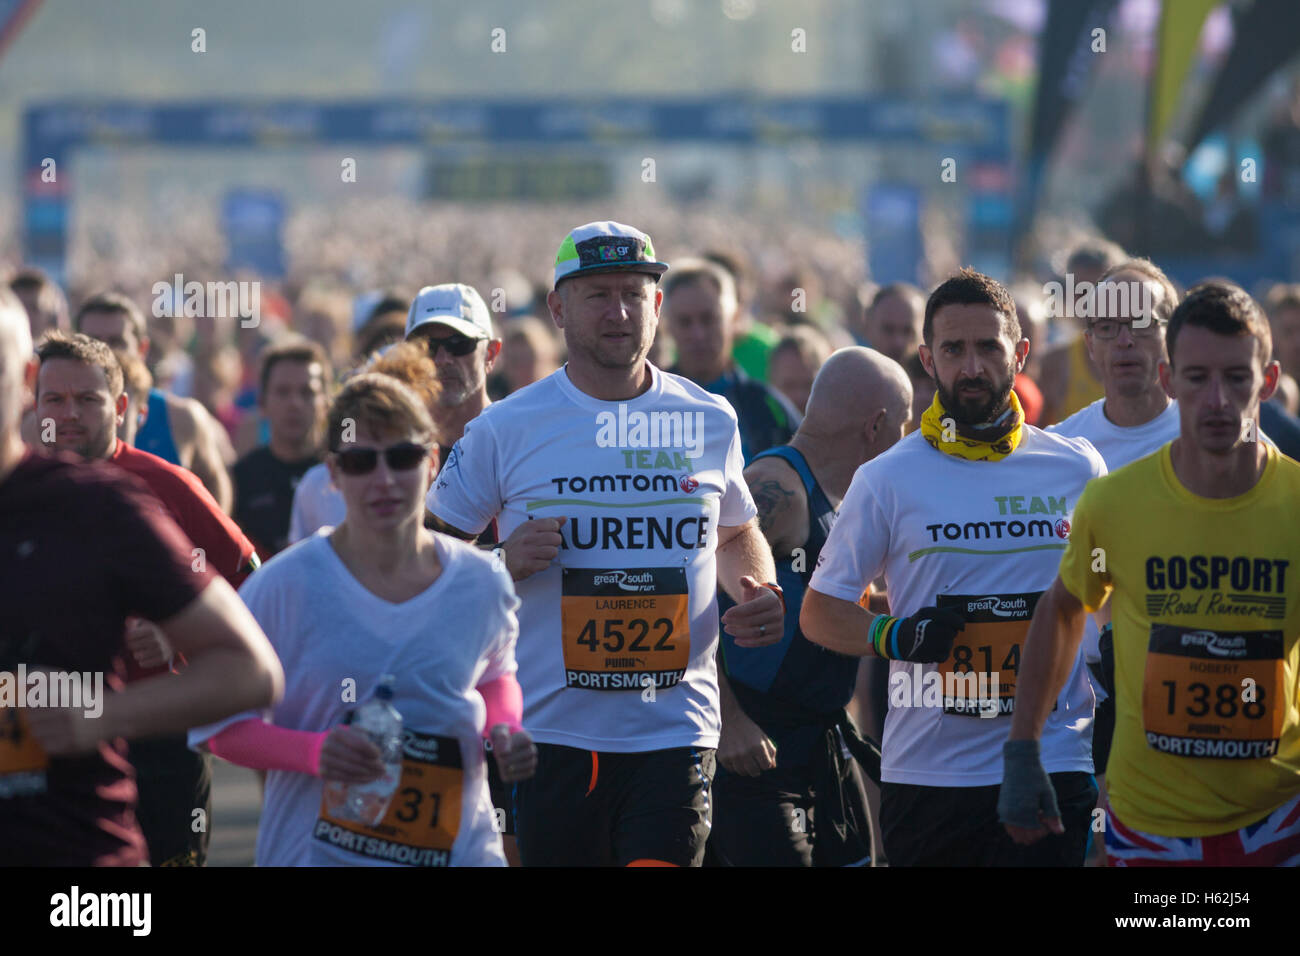 Portsmouth, UK. 23rd October, 2016.  Thousands of runners are taking part in the 2016 Great South Run in the waterfront - Stock Image